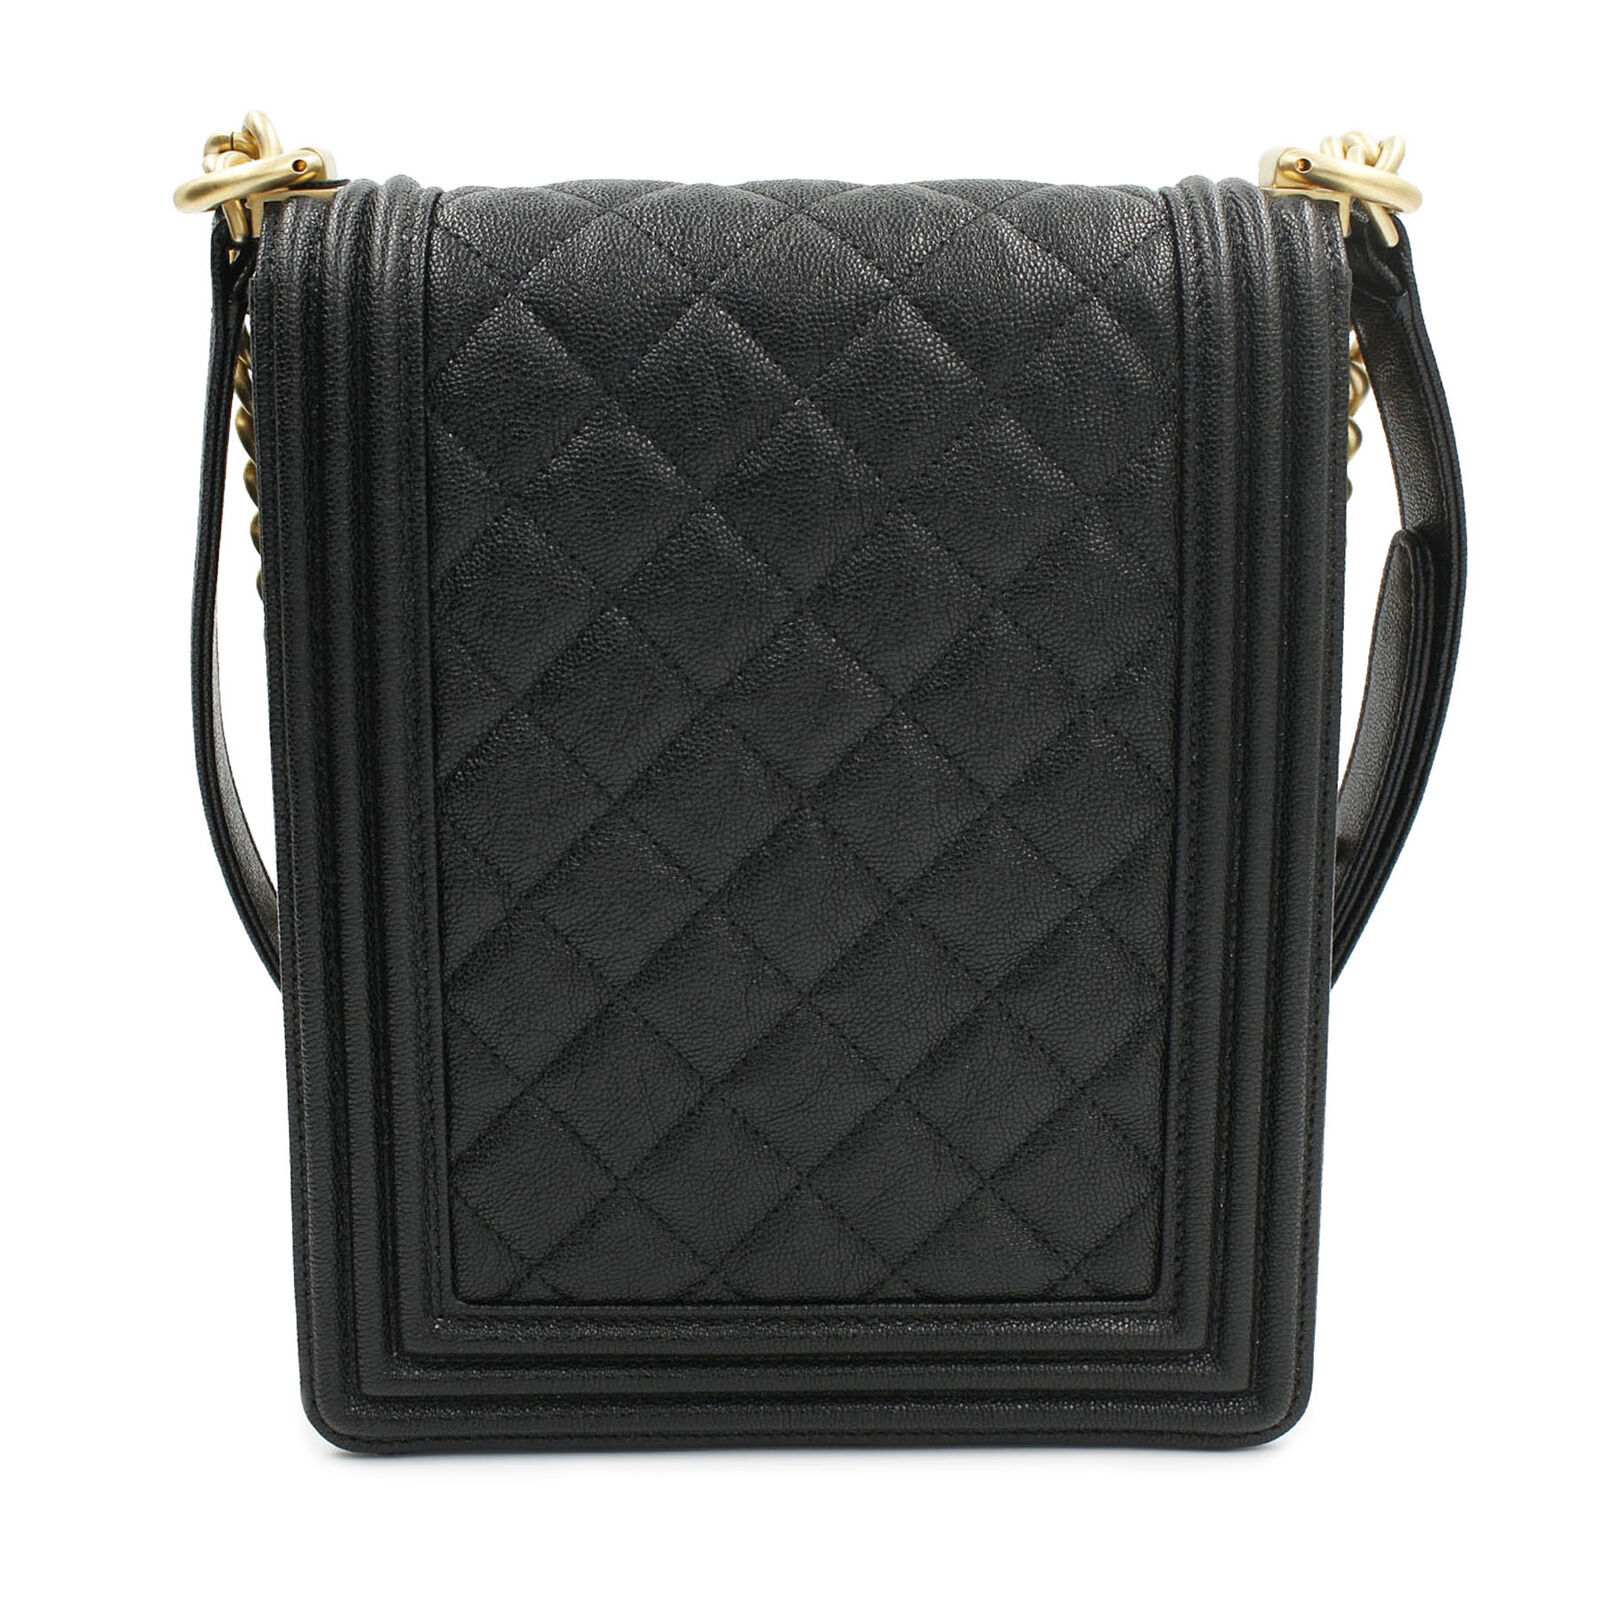 Chanel Black Caviar Quilted North South Boy Flap Bag AS0130 Y83621 94305